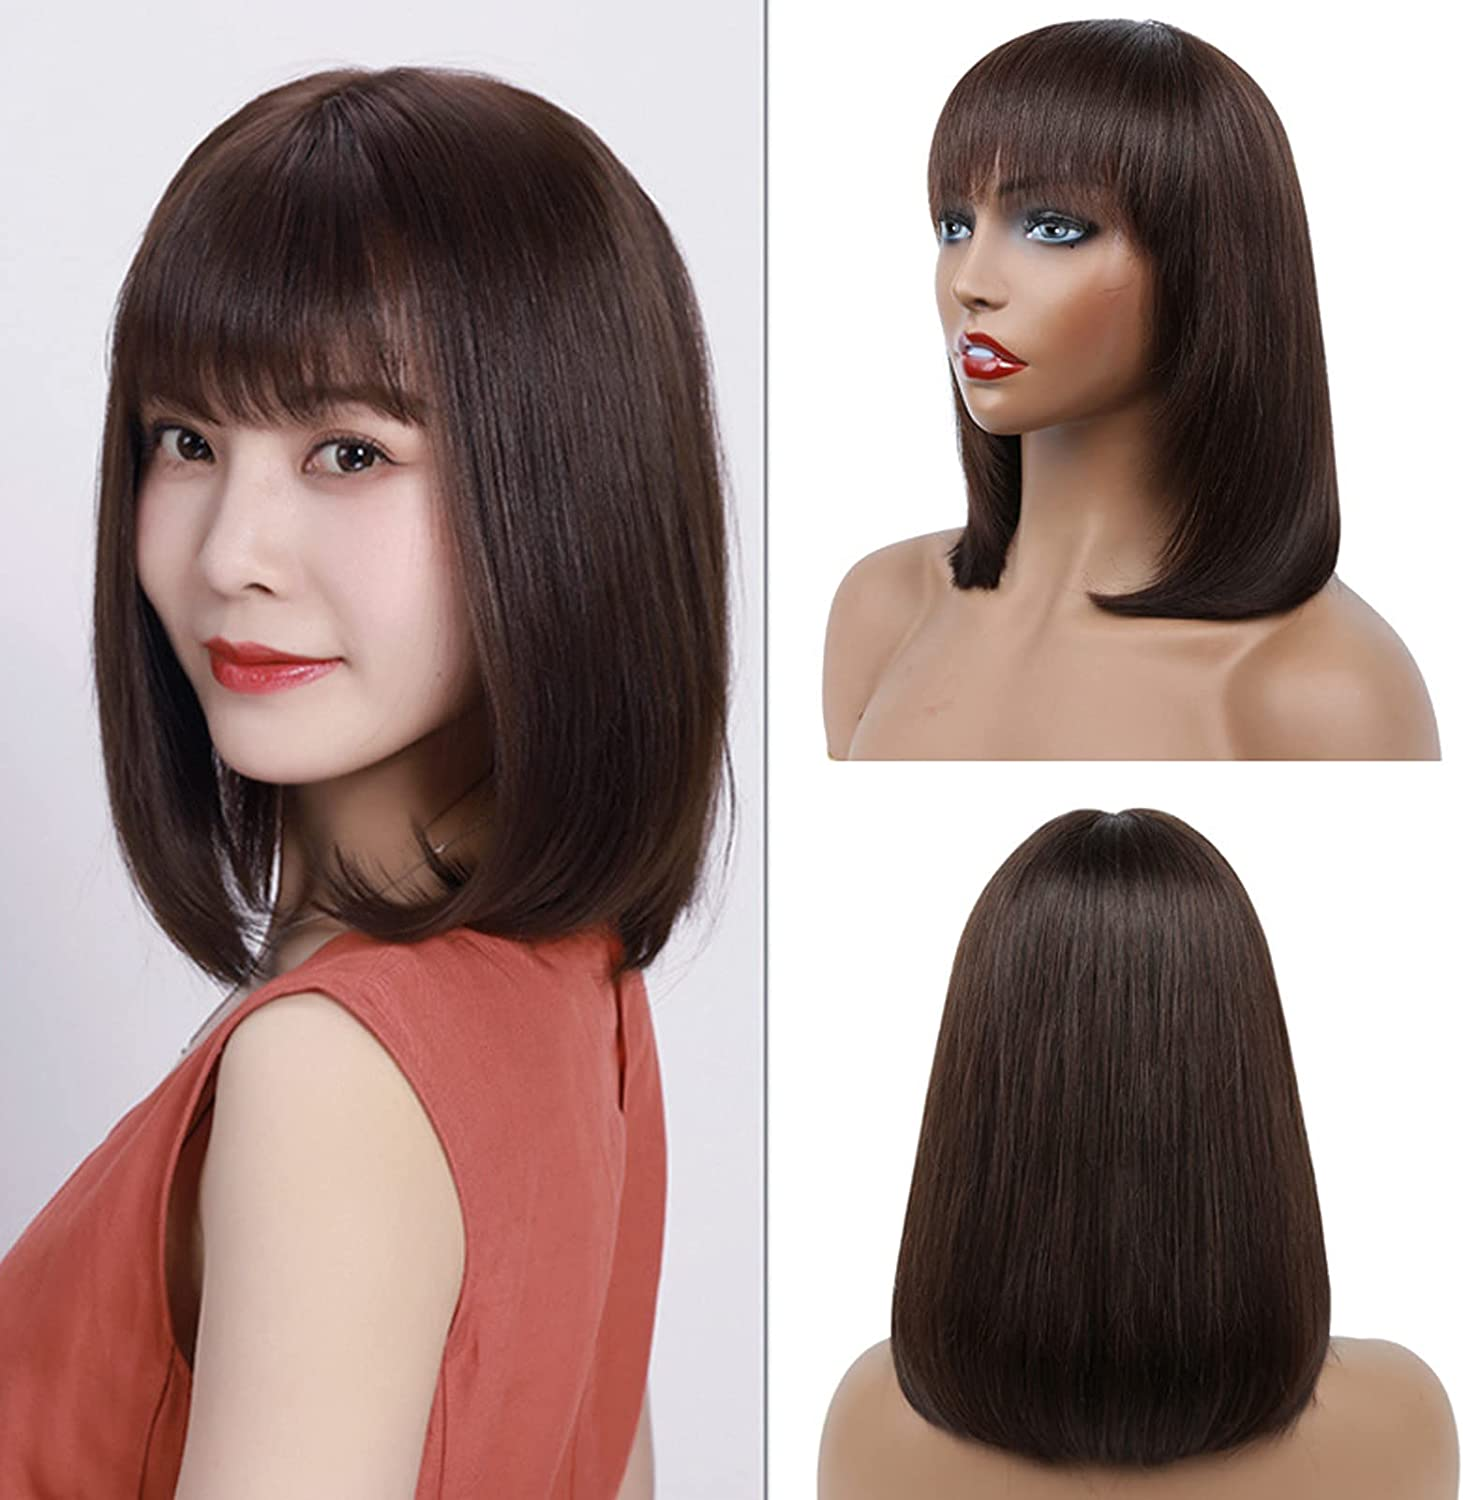 MMMRRTIME Max 52% OFF Celebrity Fashion Bob Wigs for H Girl Remy Human Women Albuquerque Mall